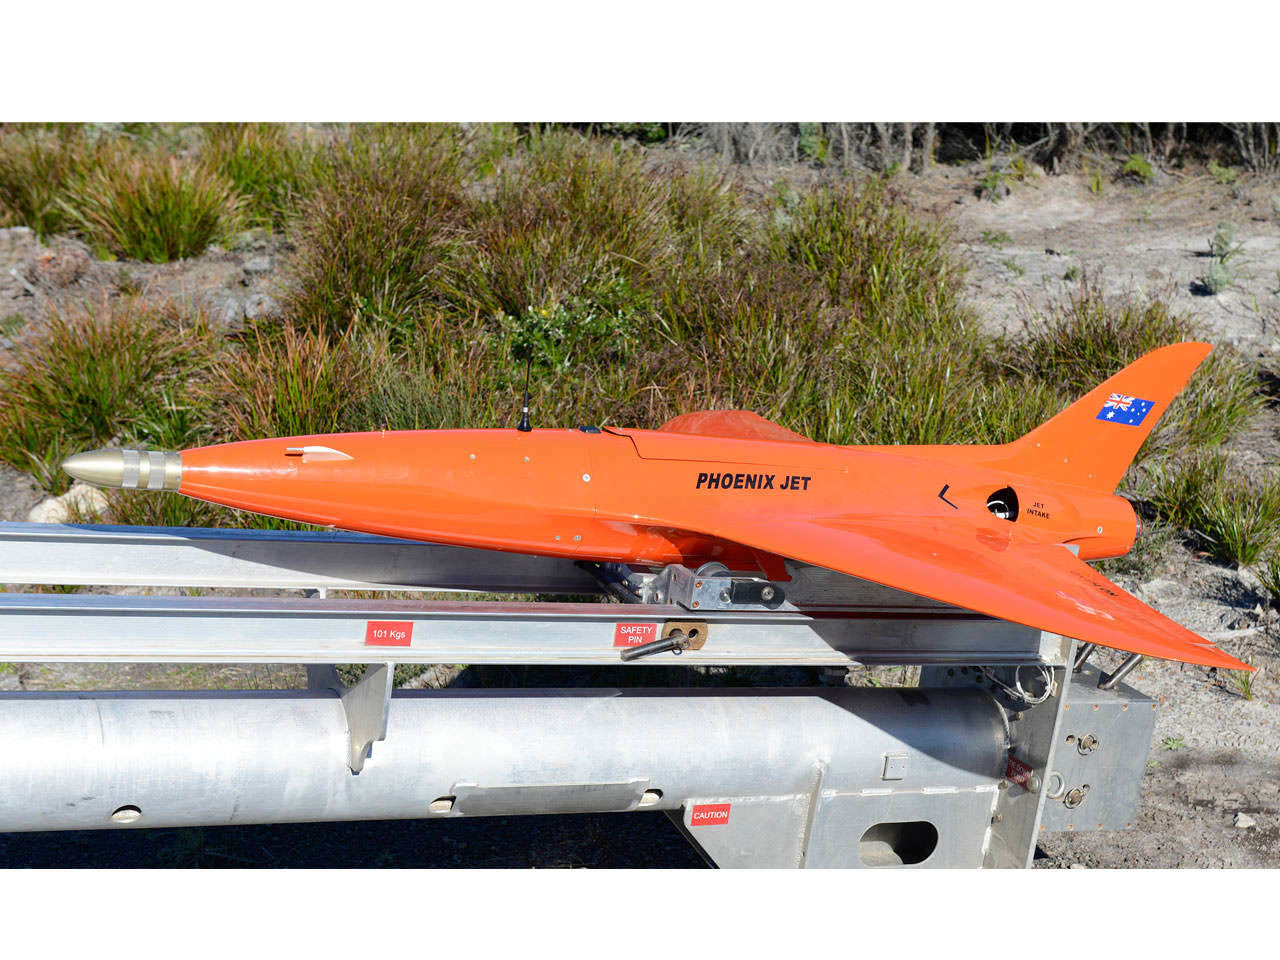 Integration_target_drone_miss_distance_indicator_133